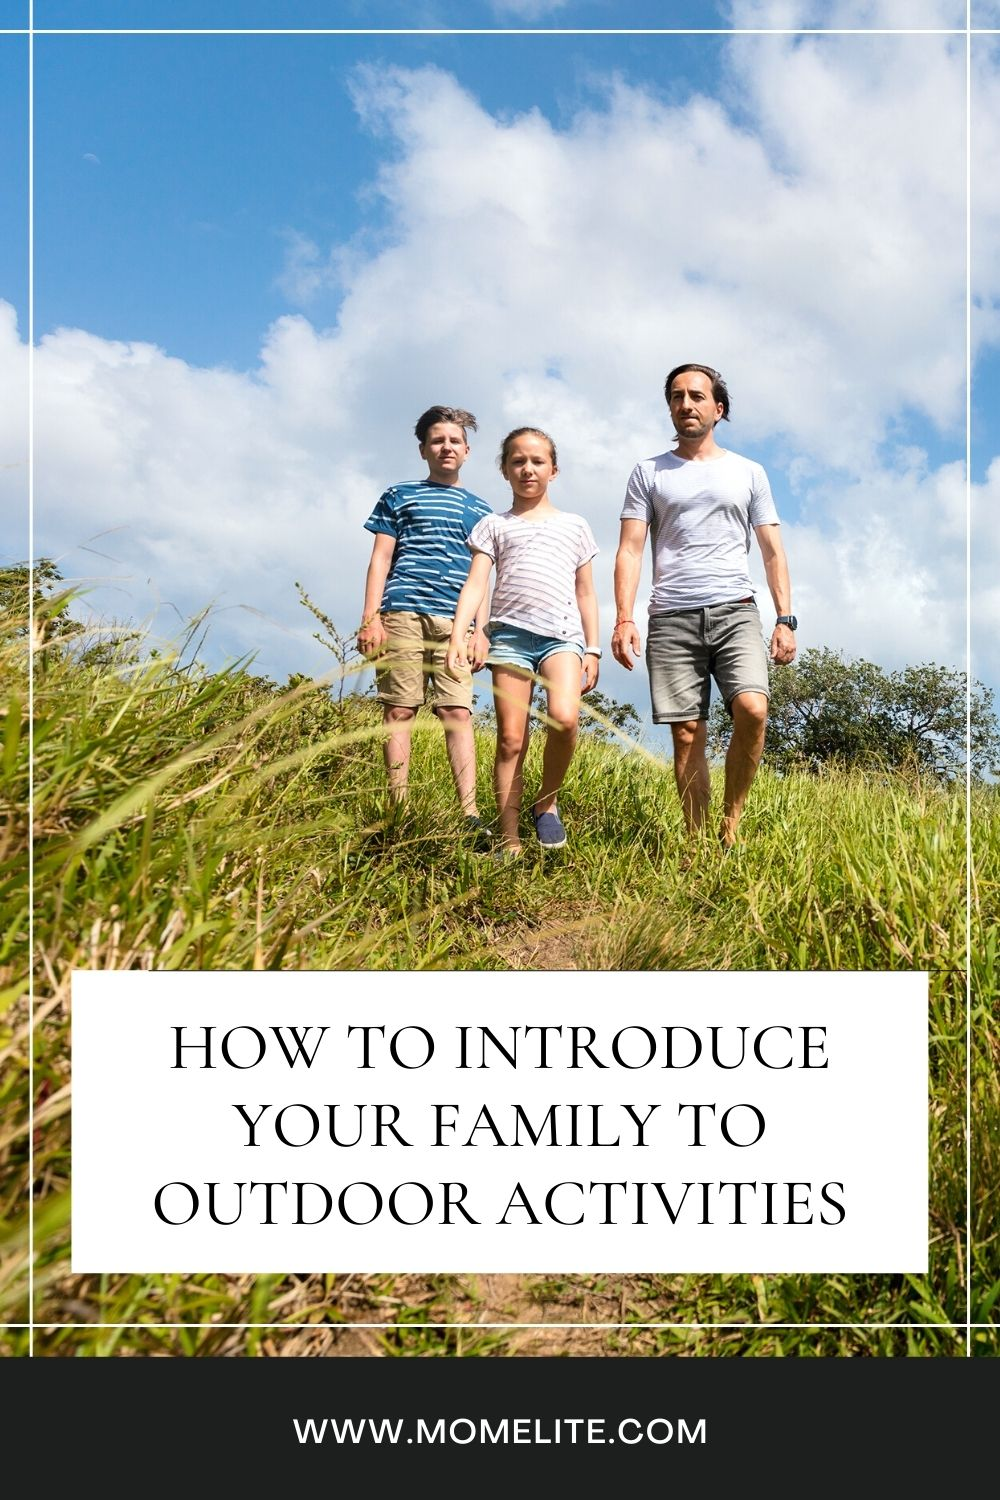 HOW TO INTRODUCE YOUR FAMILY TO OUTDOOR ACTIVITIES